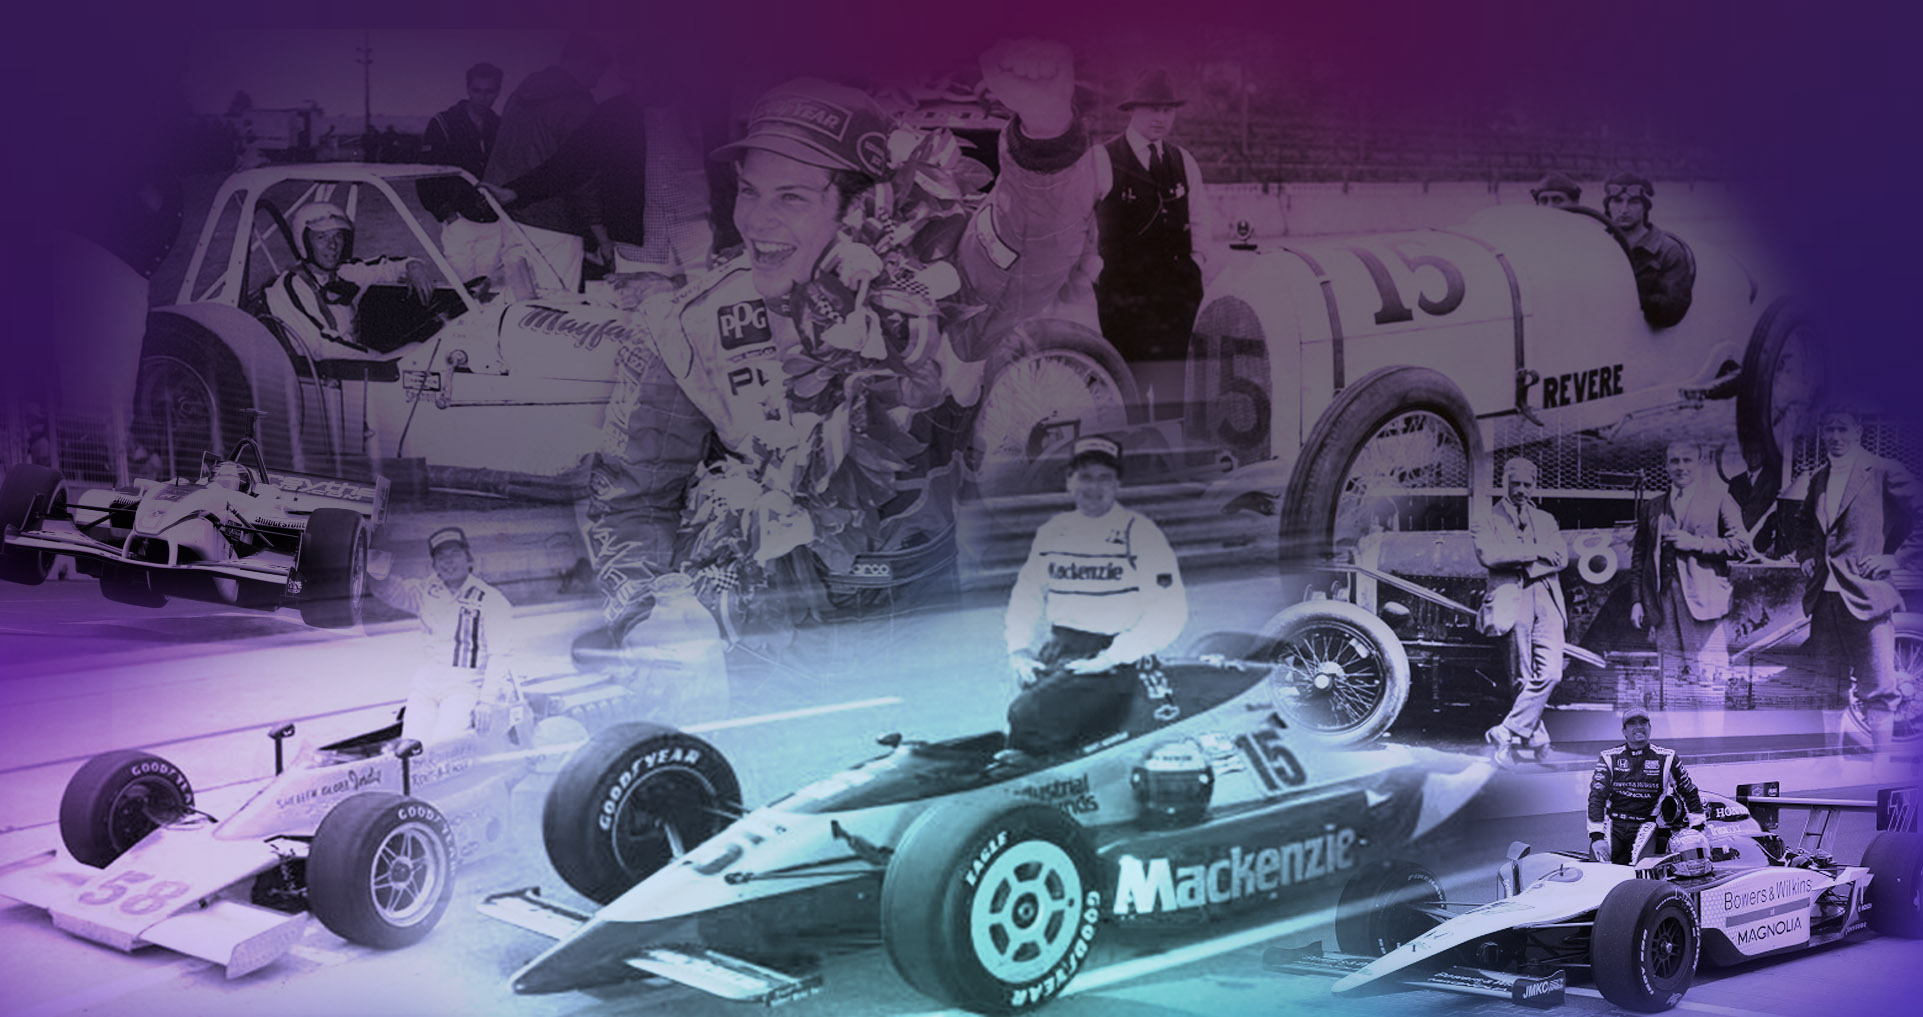 EIGHT CMHF INDUCTEES HAVE RACED IN THE INDIANAPOLIS 500